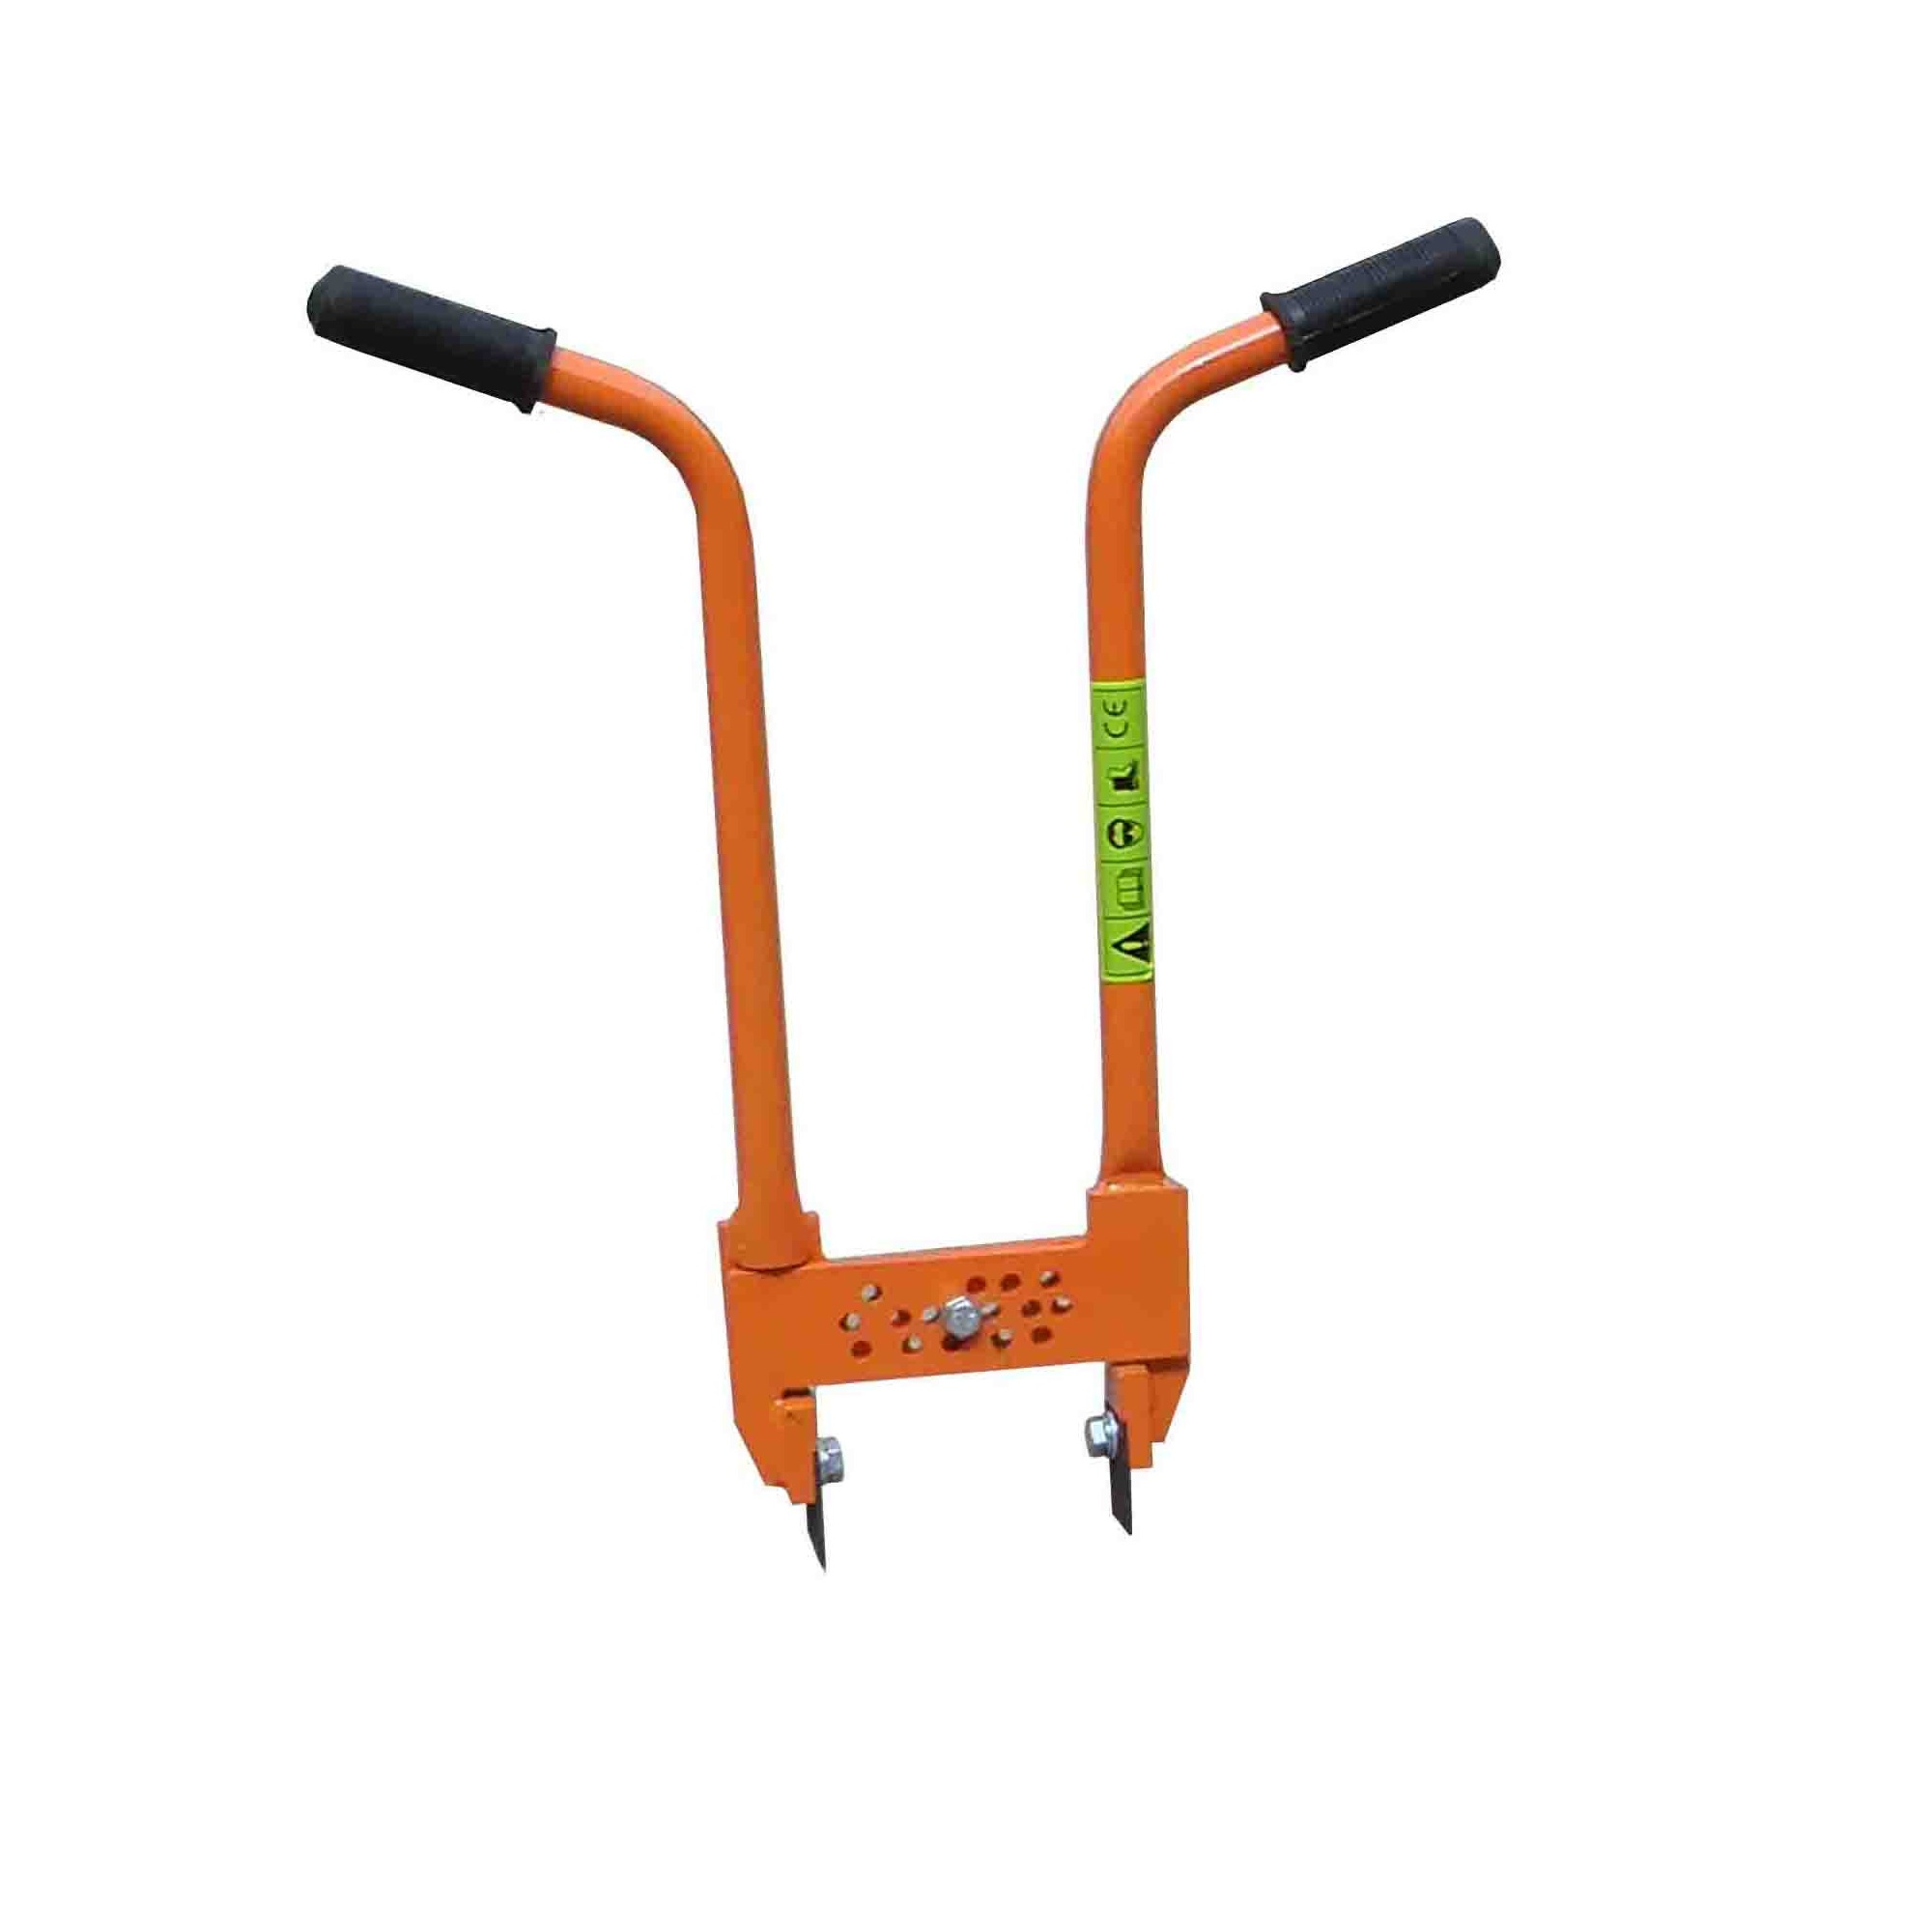 Orange metal Belle block paving lifter tool with long handles and safety stickers on